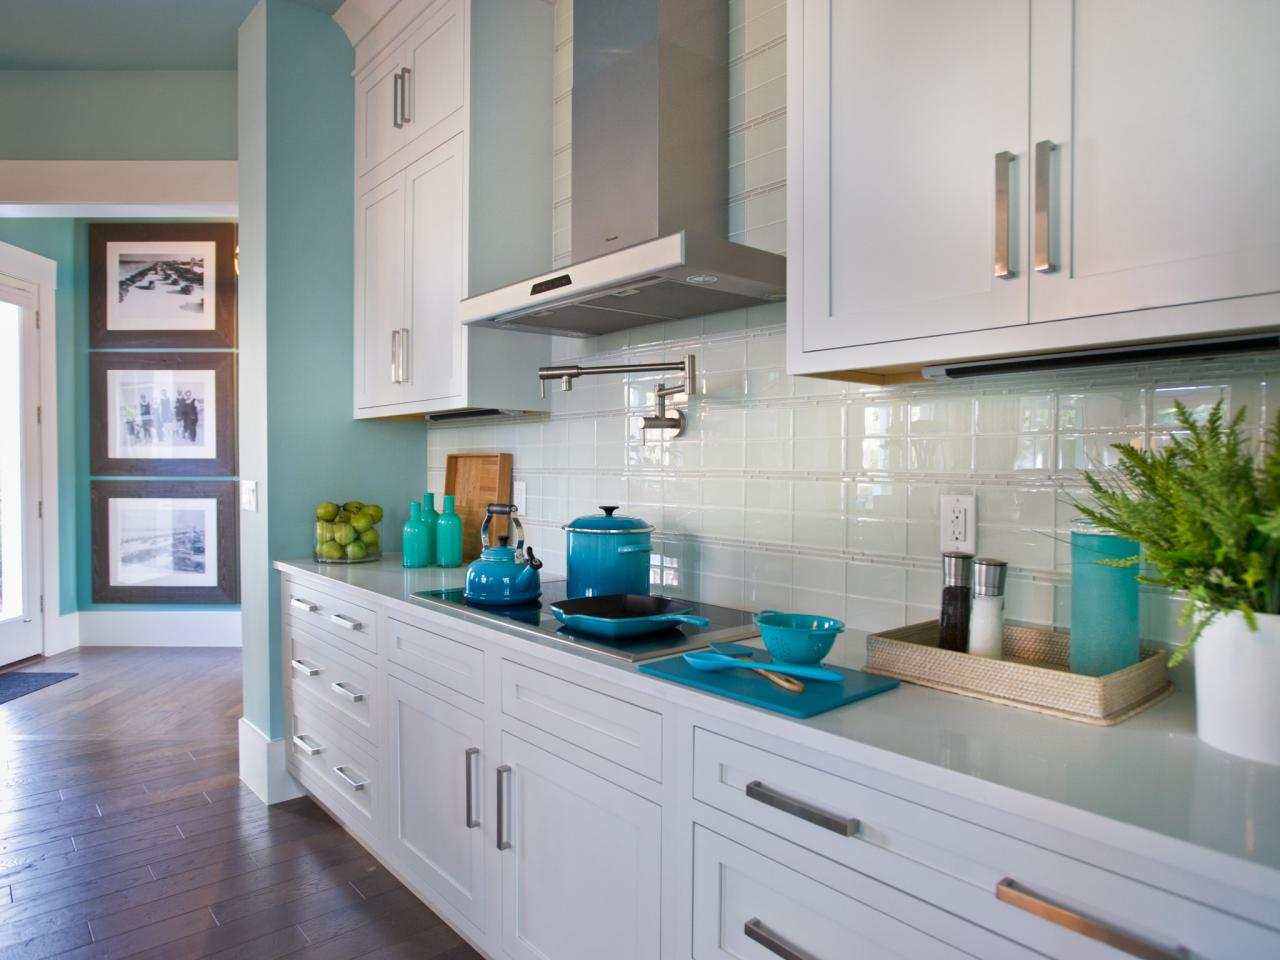 Cute Glass Tile Backsplash Ideas glass tile kitchen backsplash